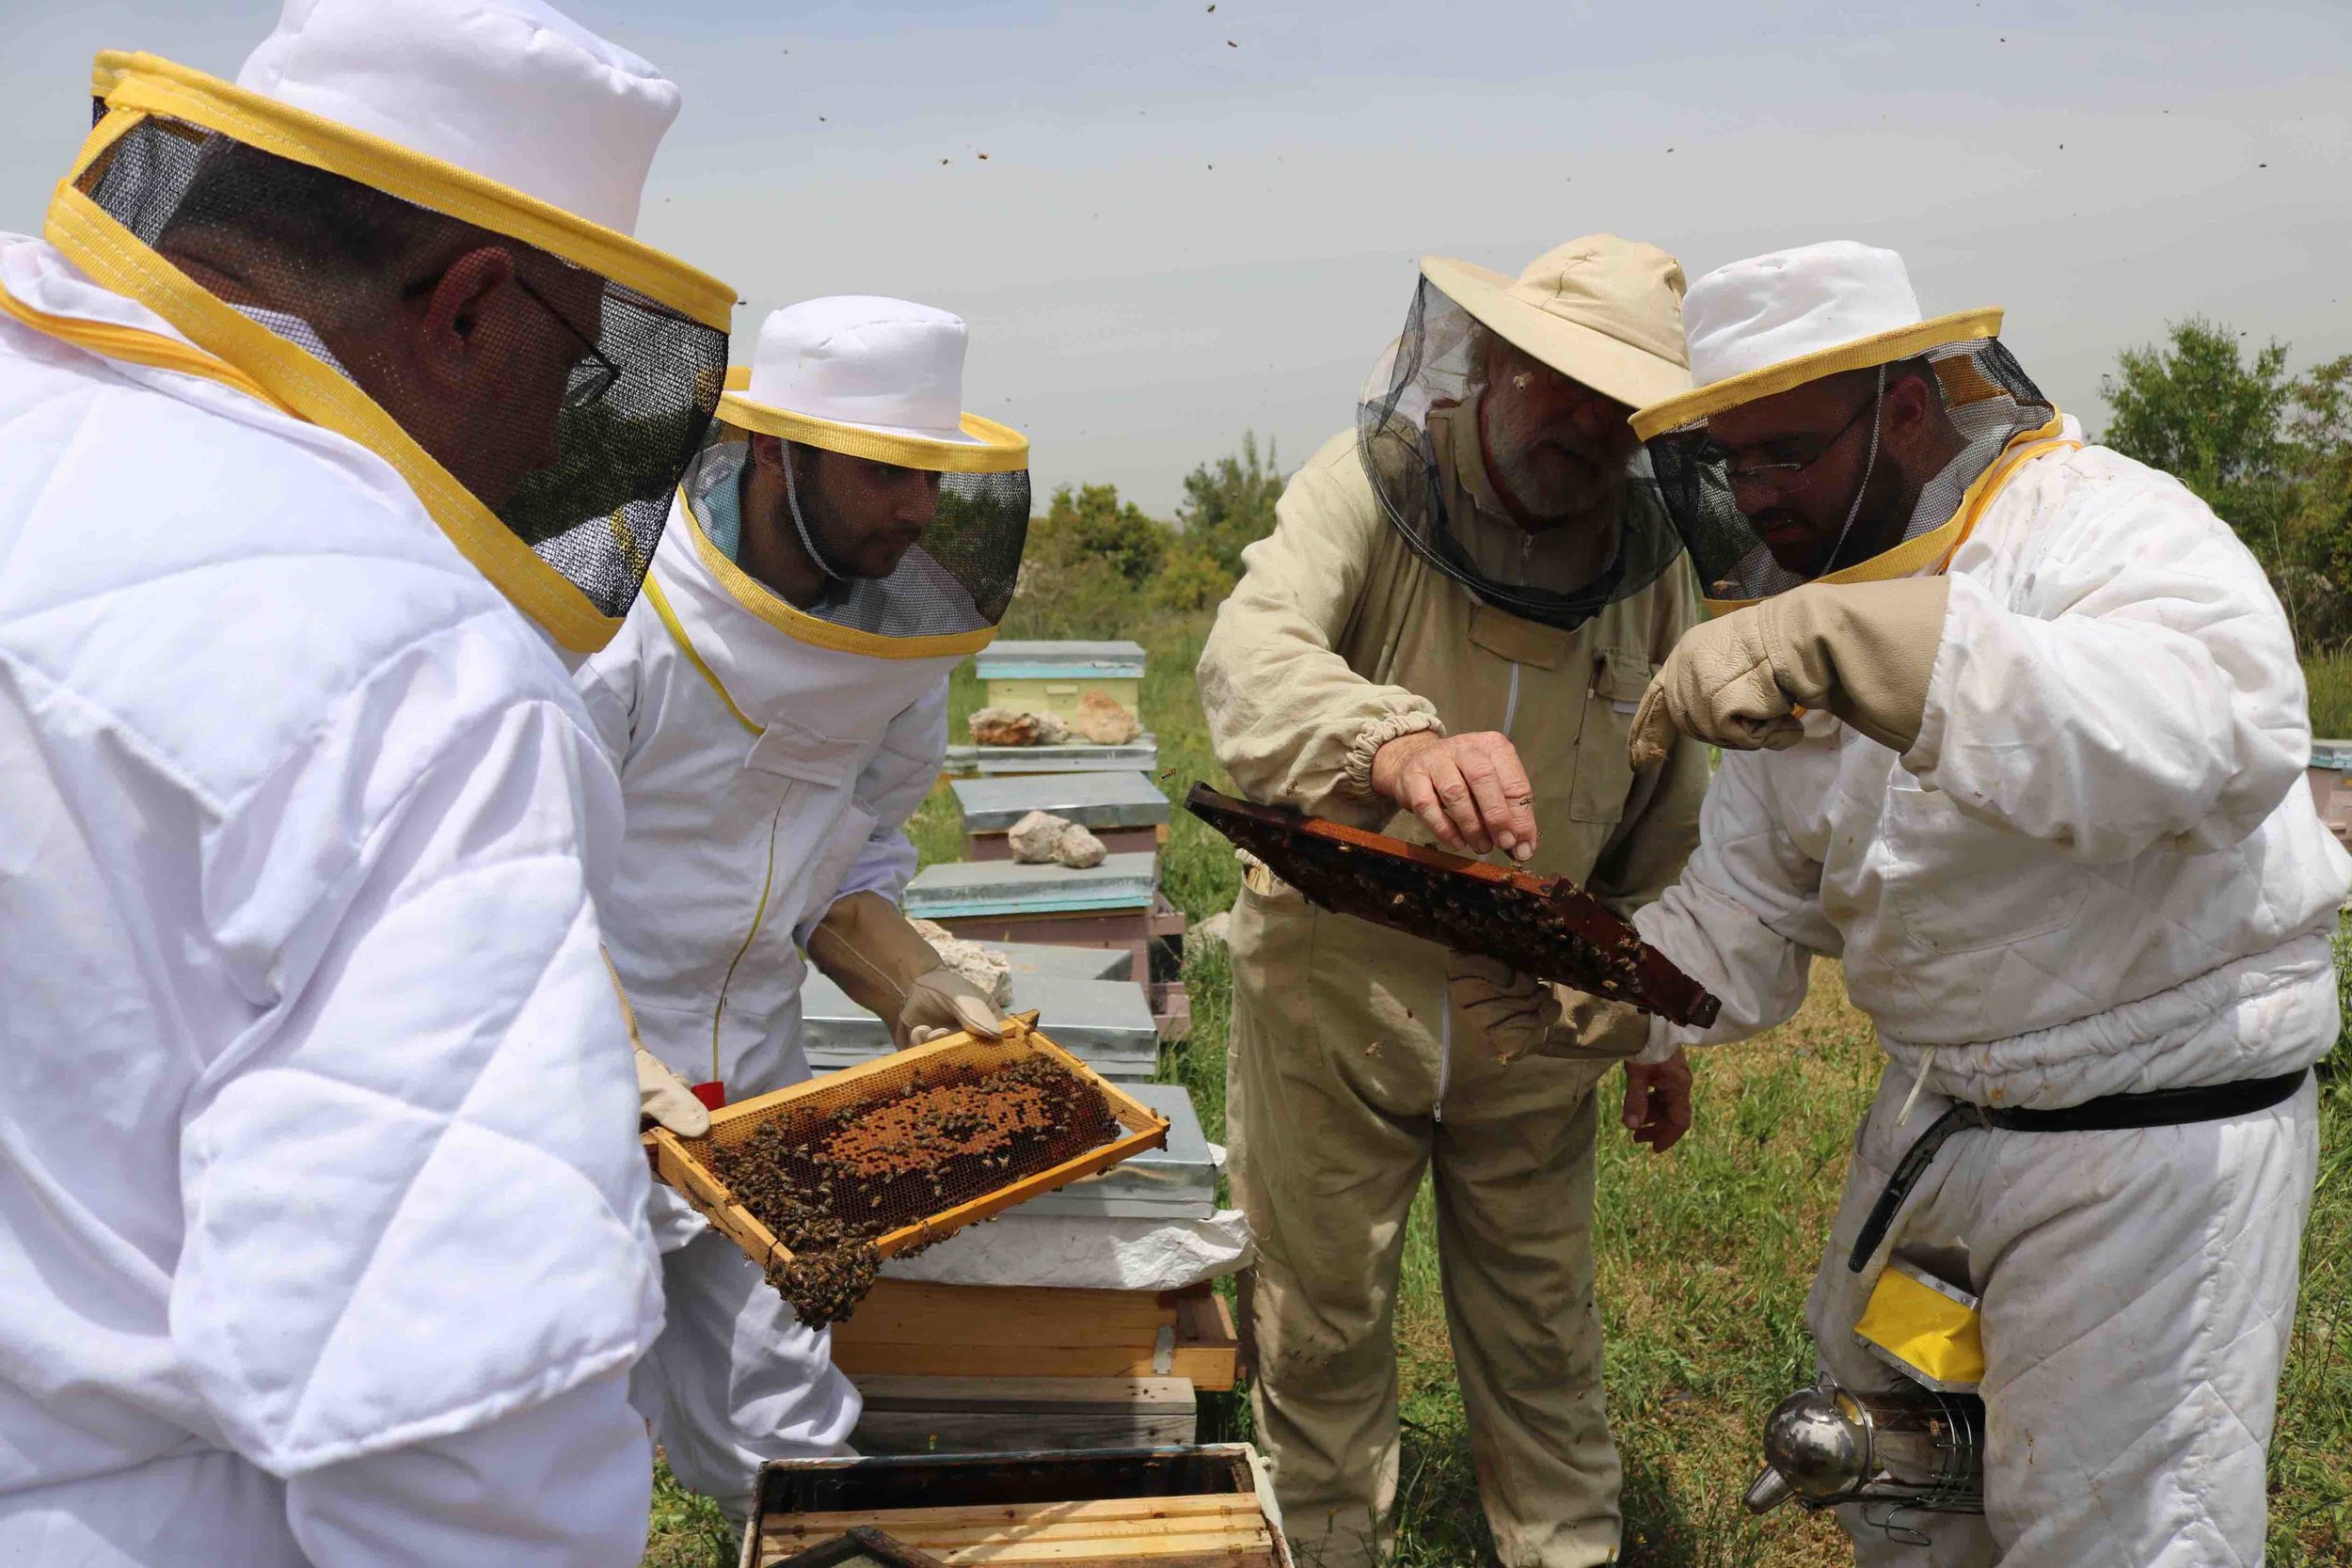 Beekeeping workshop in Saidoun, Jezzine, South Lebanon organized by SOILS Permaculture Association, within the framework of their AFIR Beekeeping and Nature Discovery Center, in collaboration with APIFLORDEV.  Photo: SOILS, 2016.